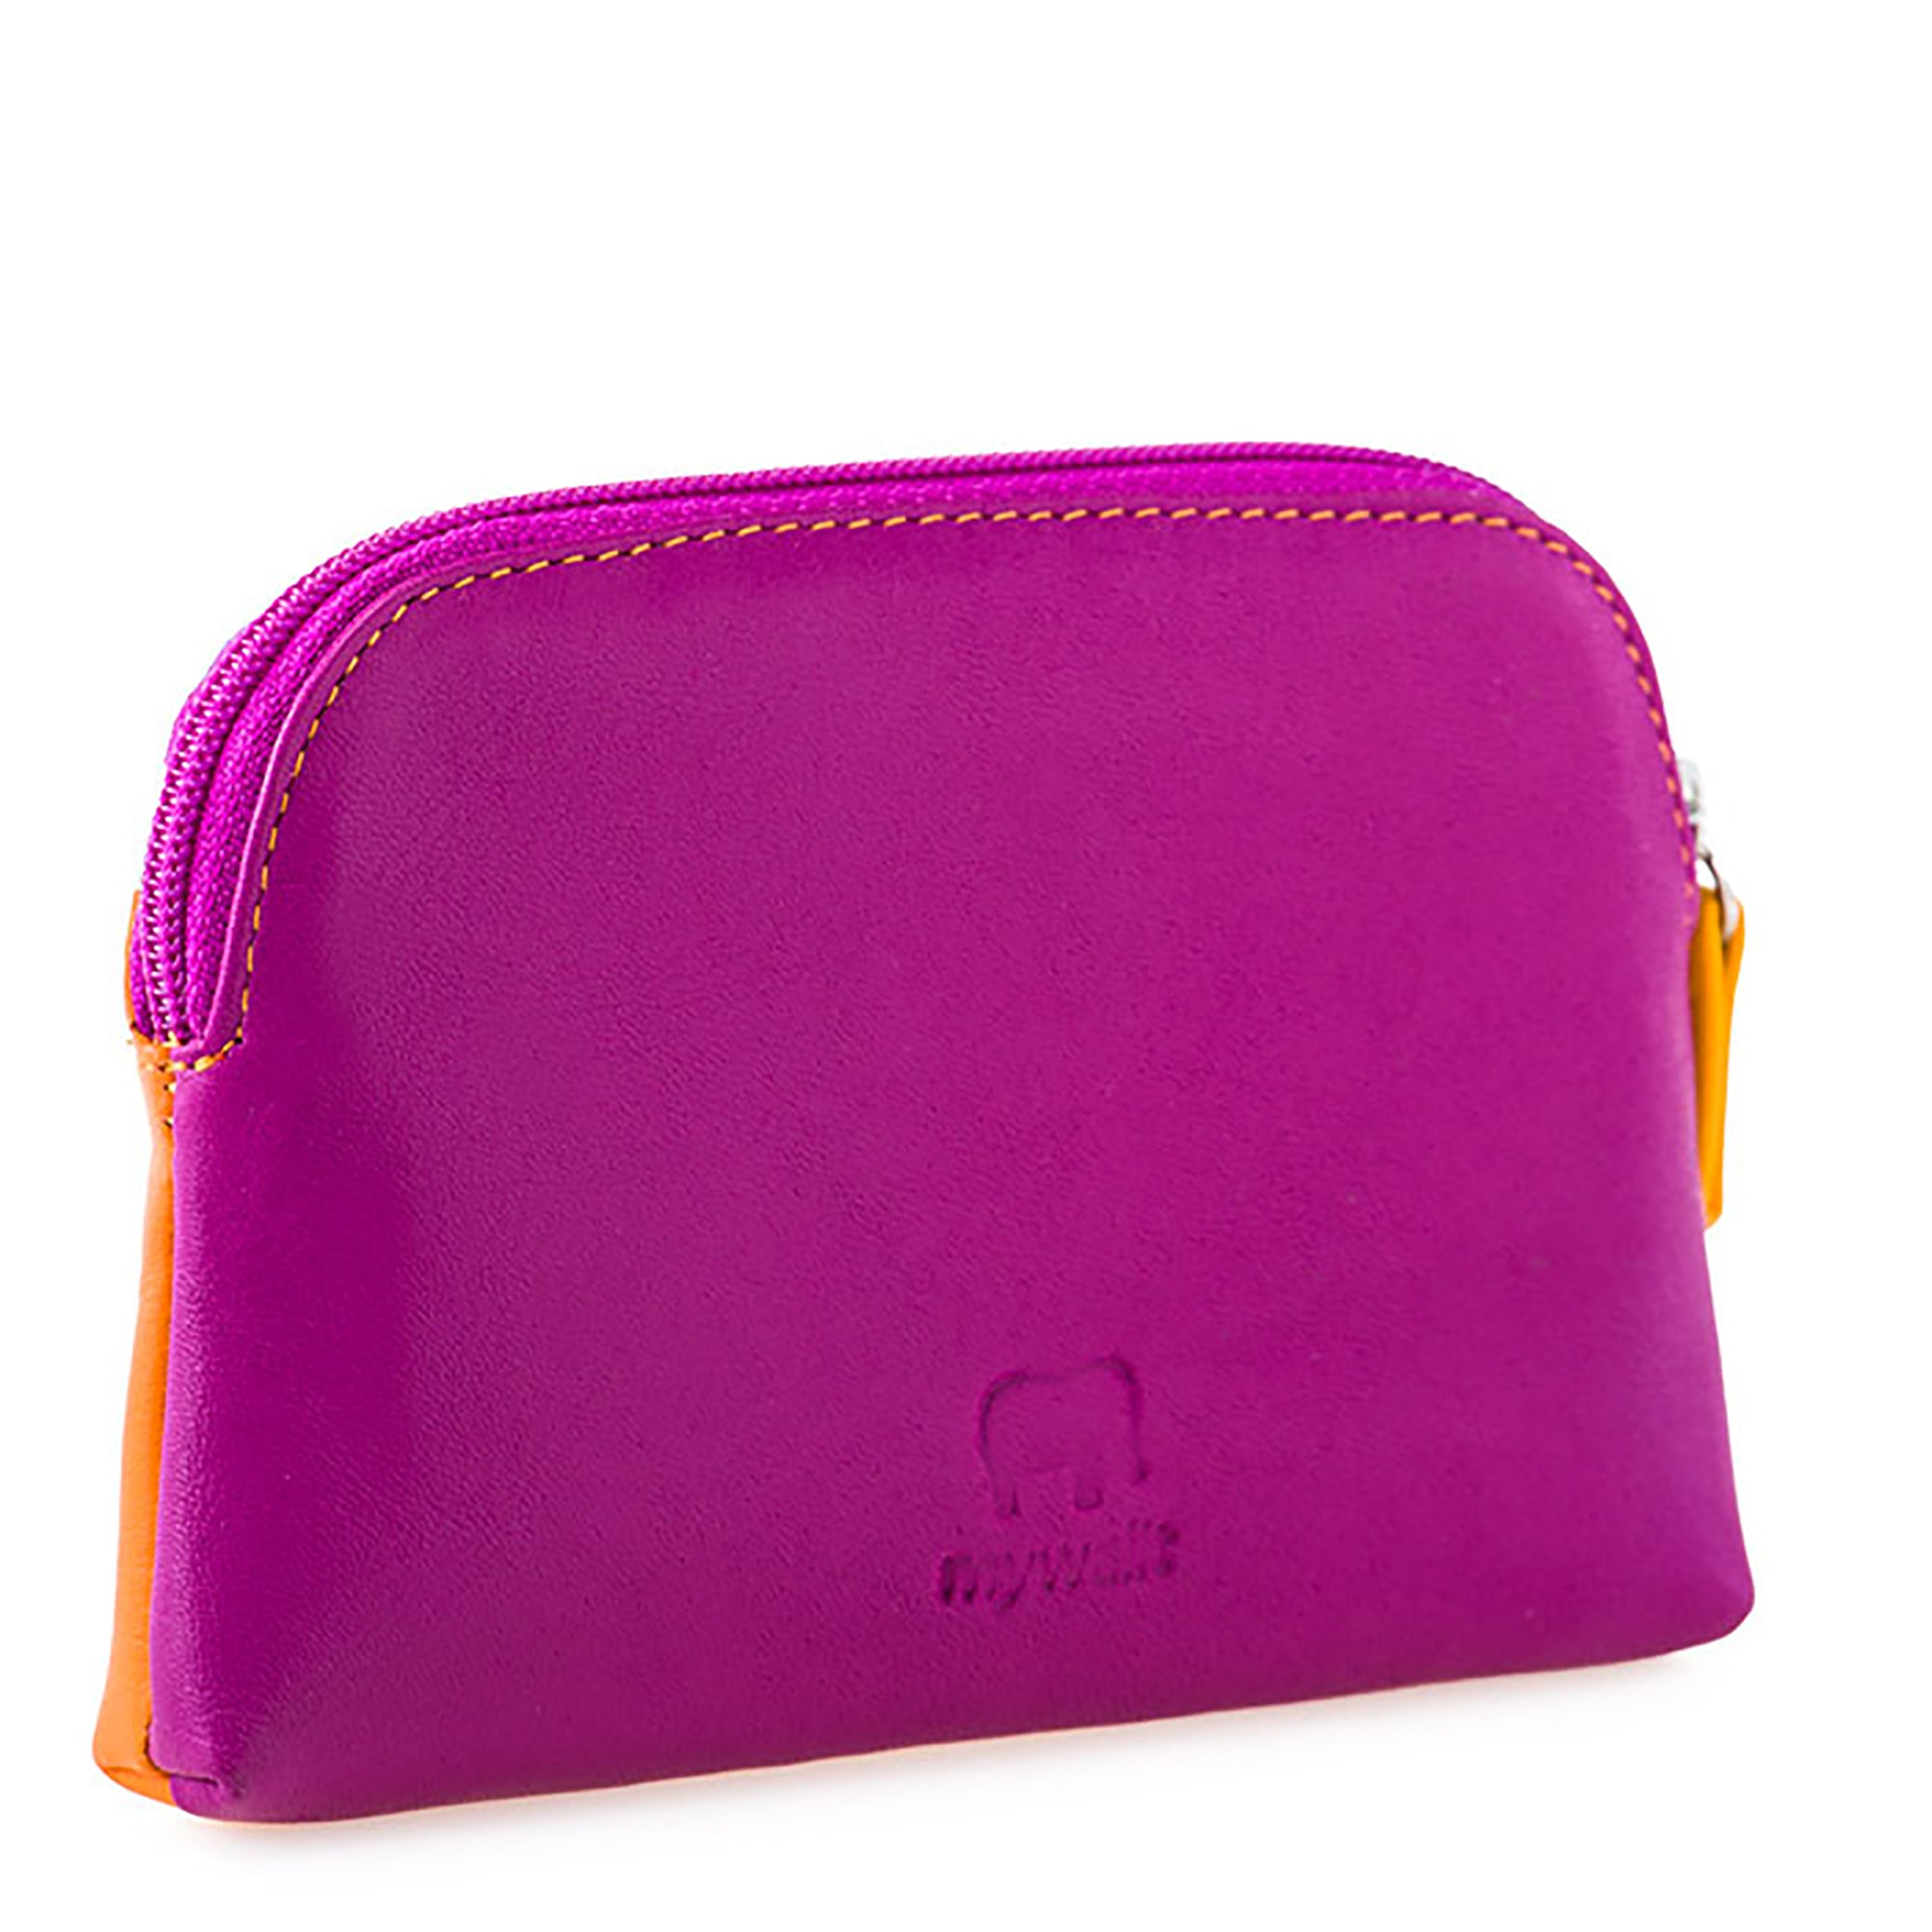 Colorful Leather Coin Purse- Copacabana | Getty Store